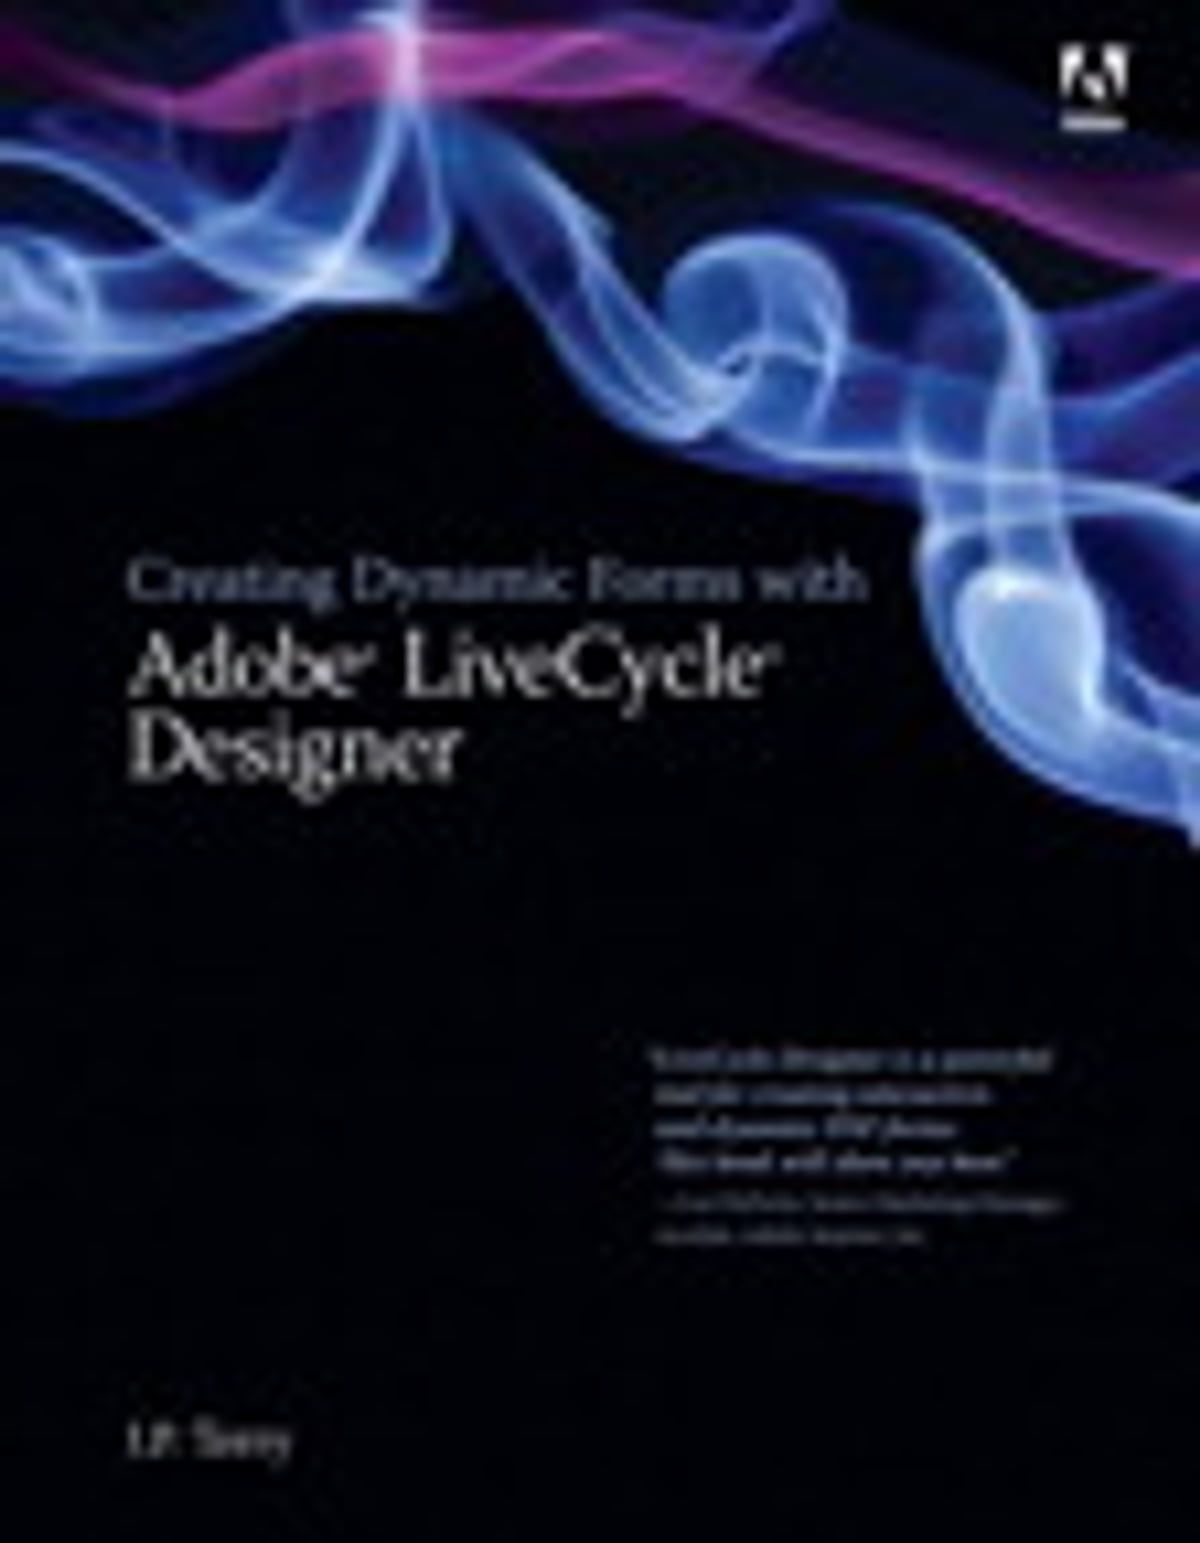 Creating Dynamic Forms With Adobe Livecycle Designer Ebook By J P